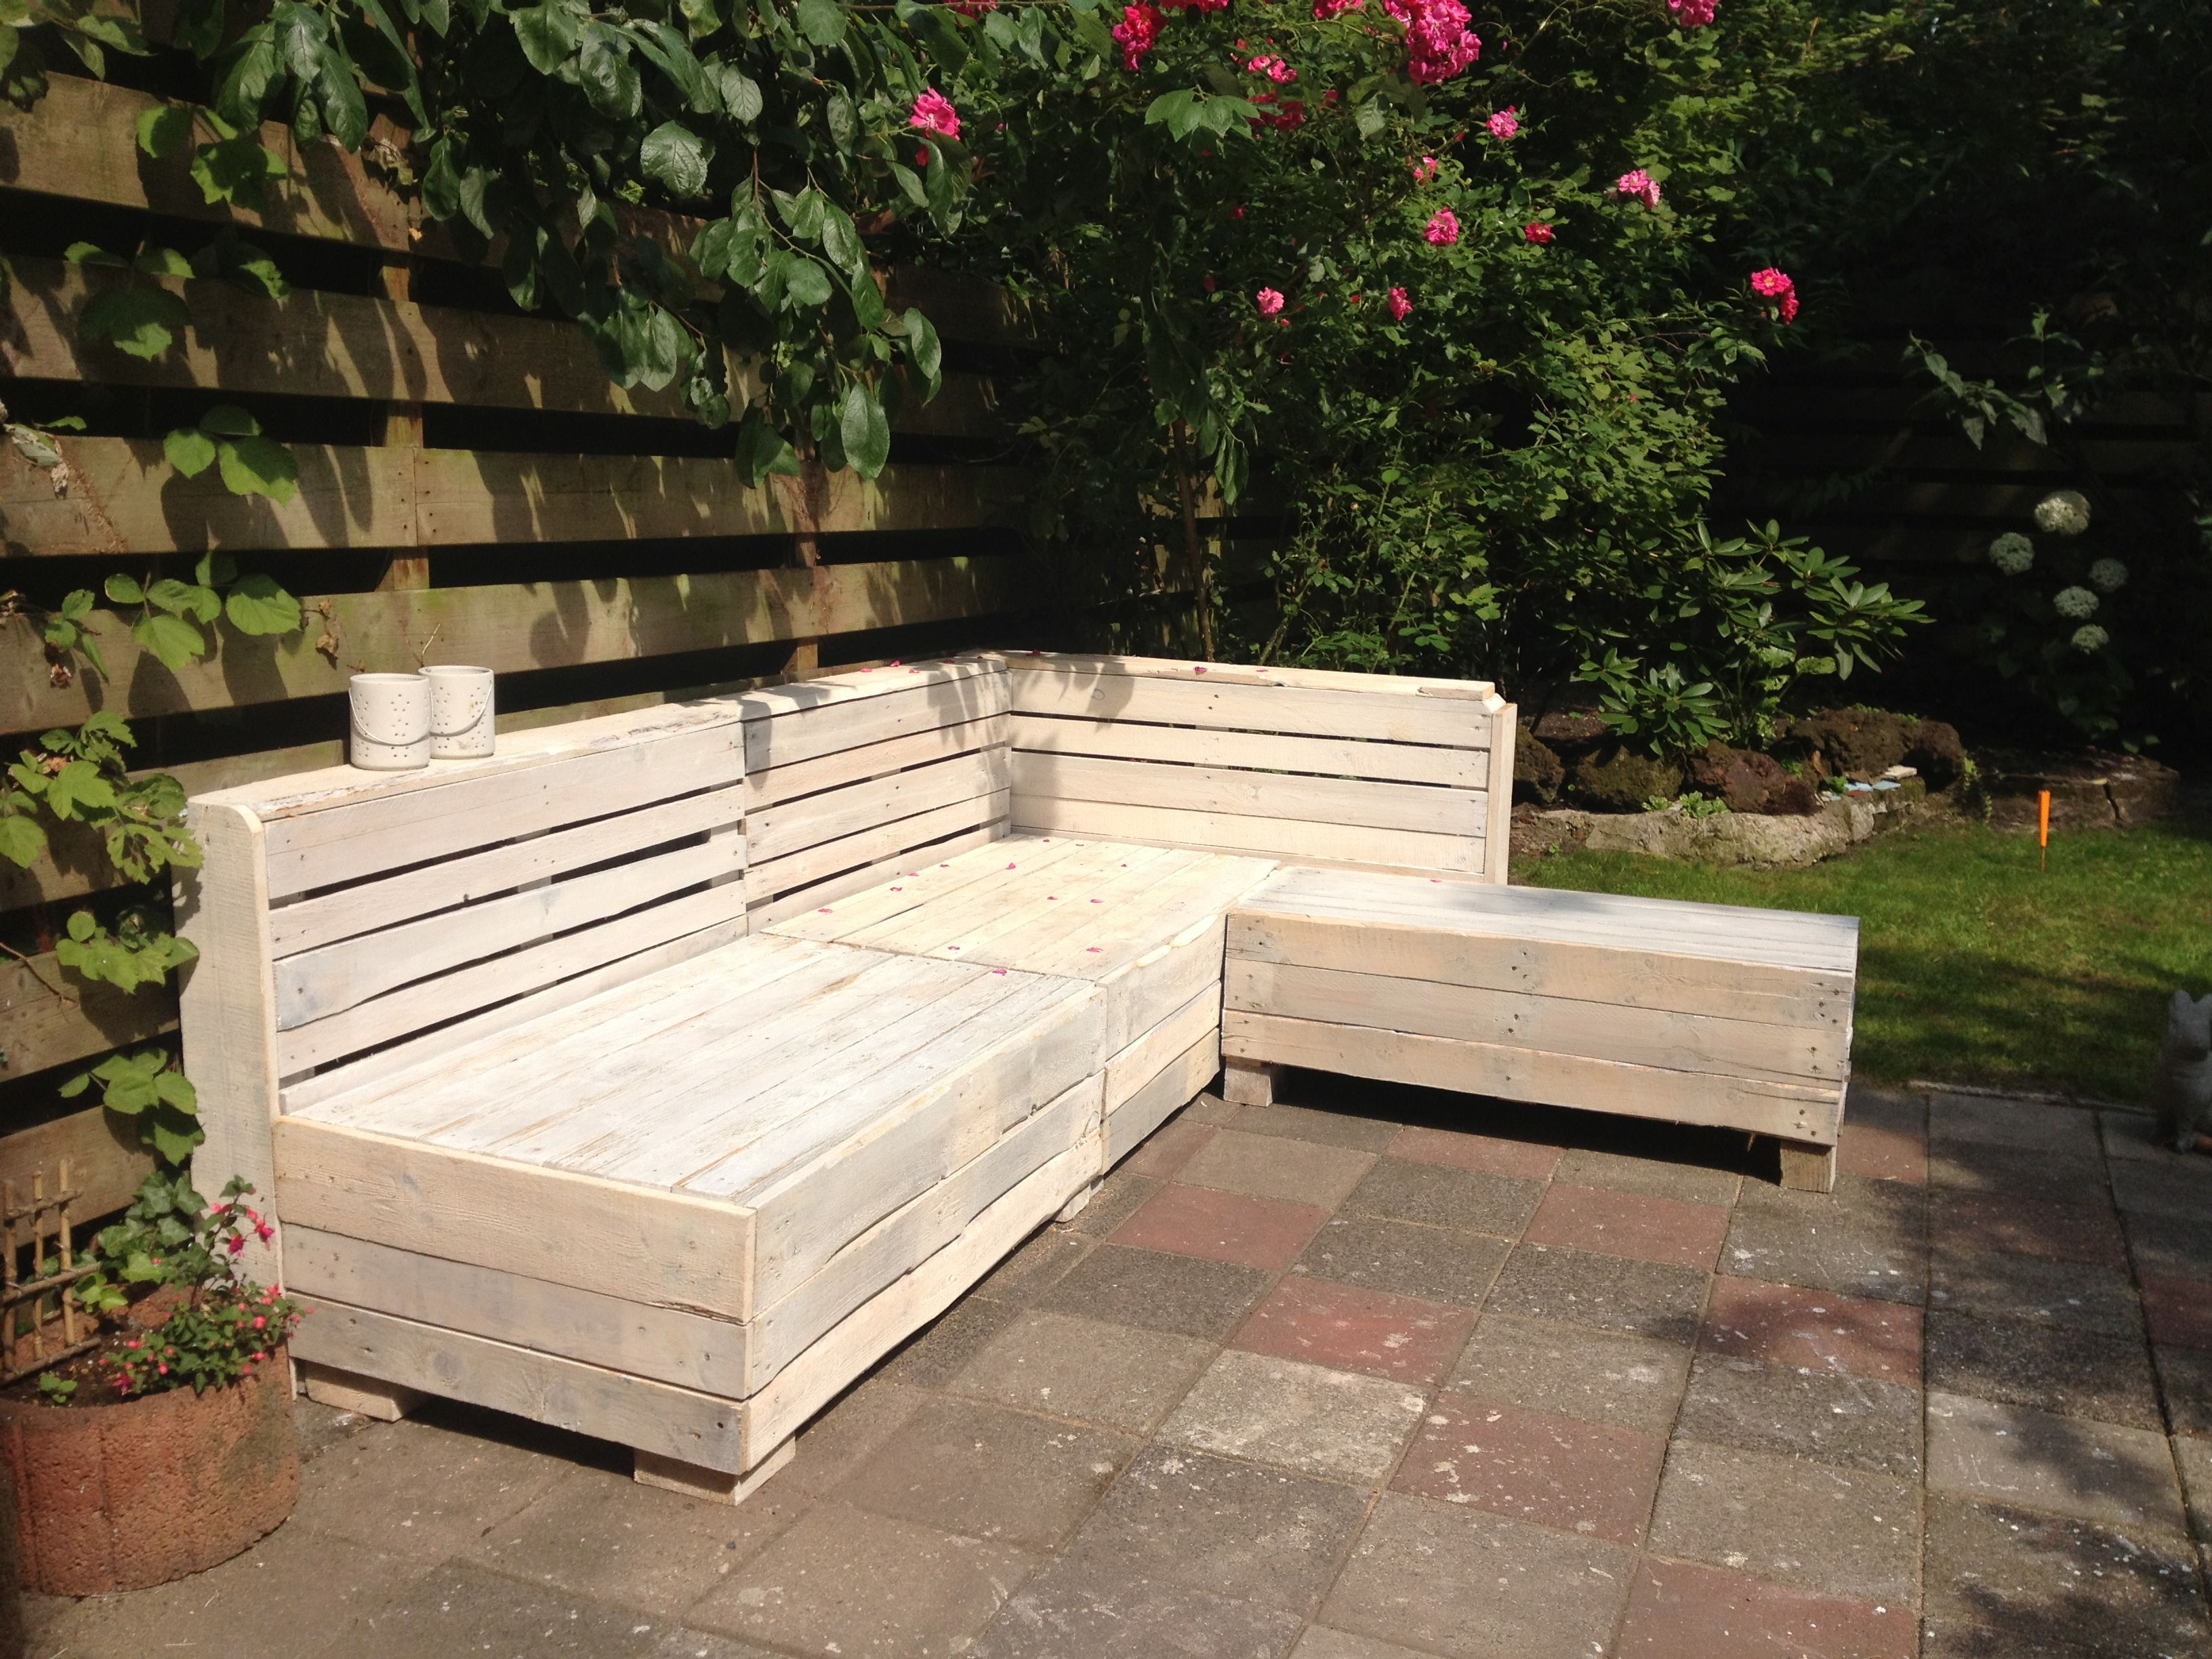 Homemade Wooden Pallet Couch White Wash Finish Make Made Pinterest Wooden Pallets